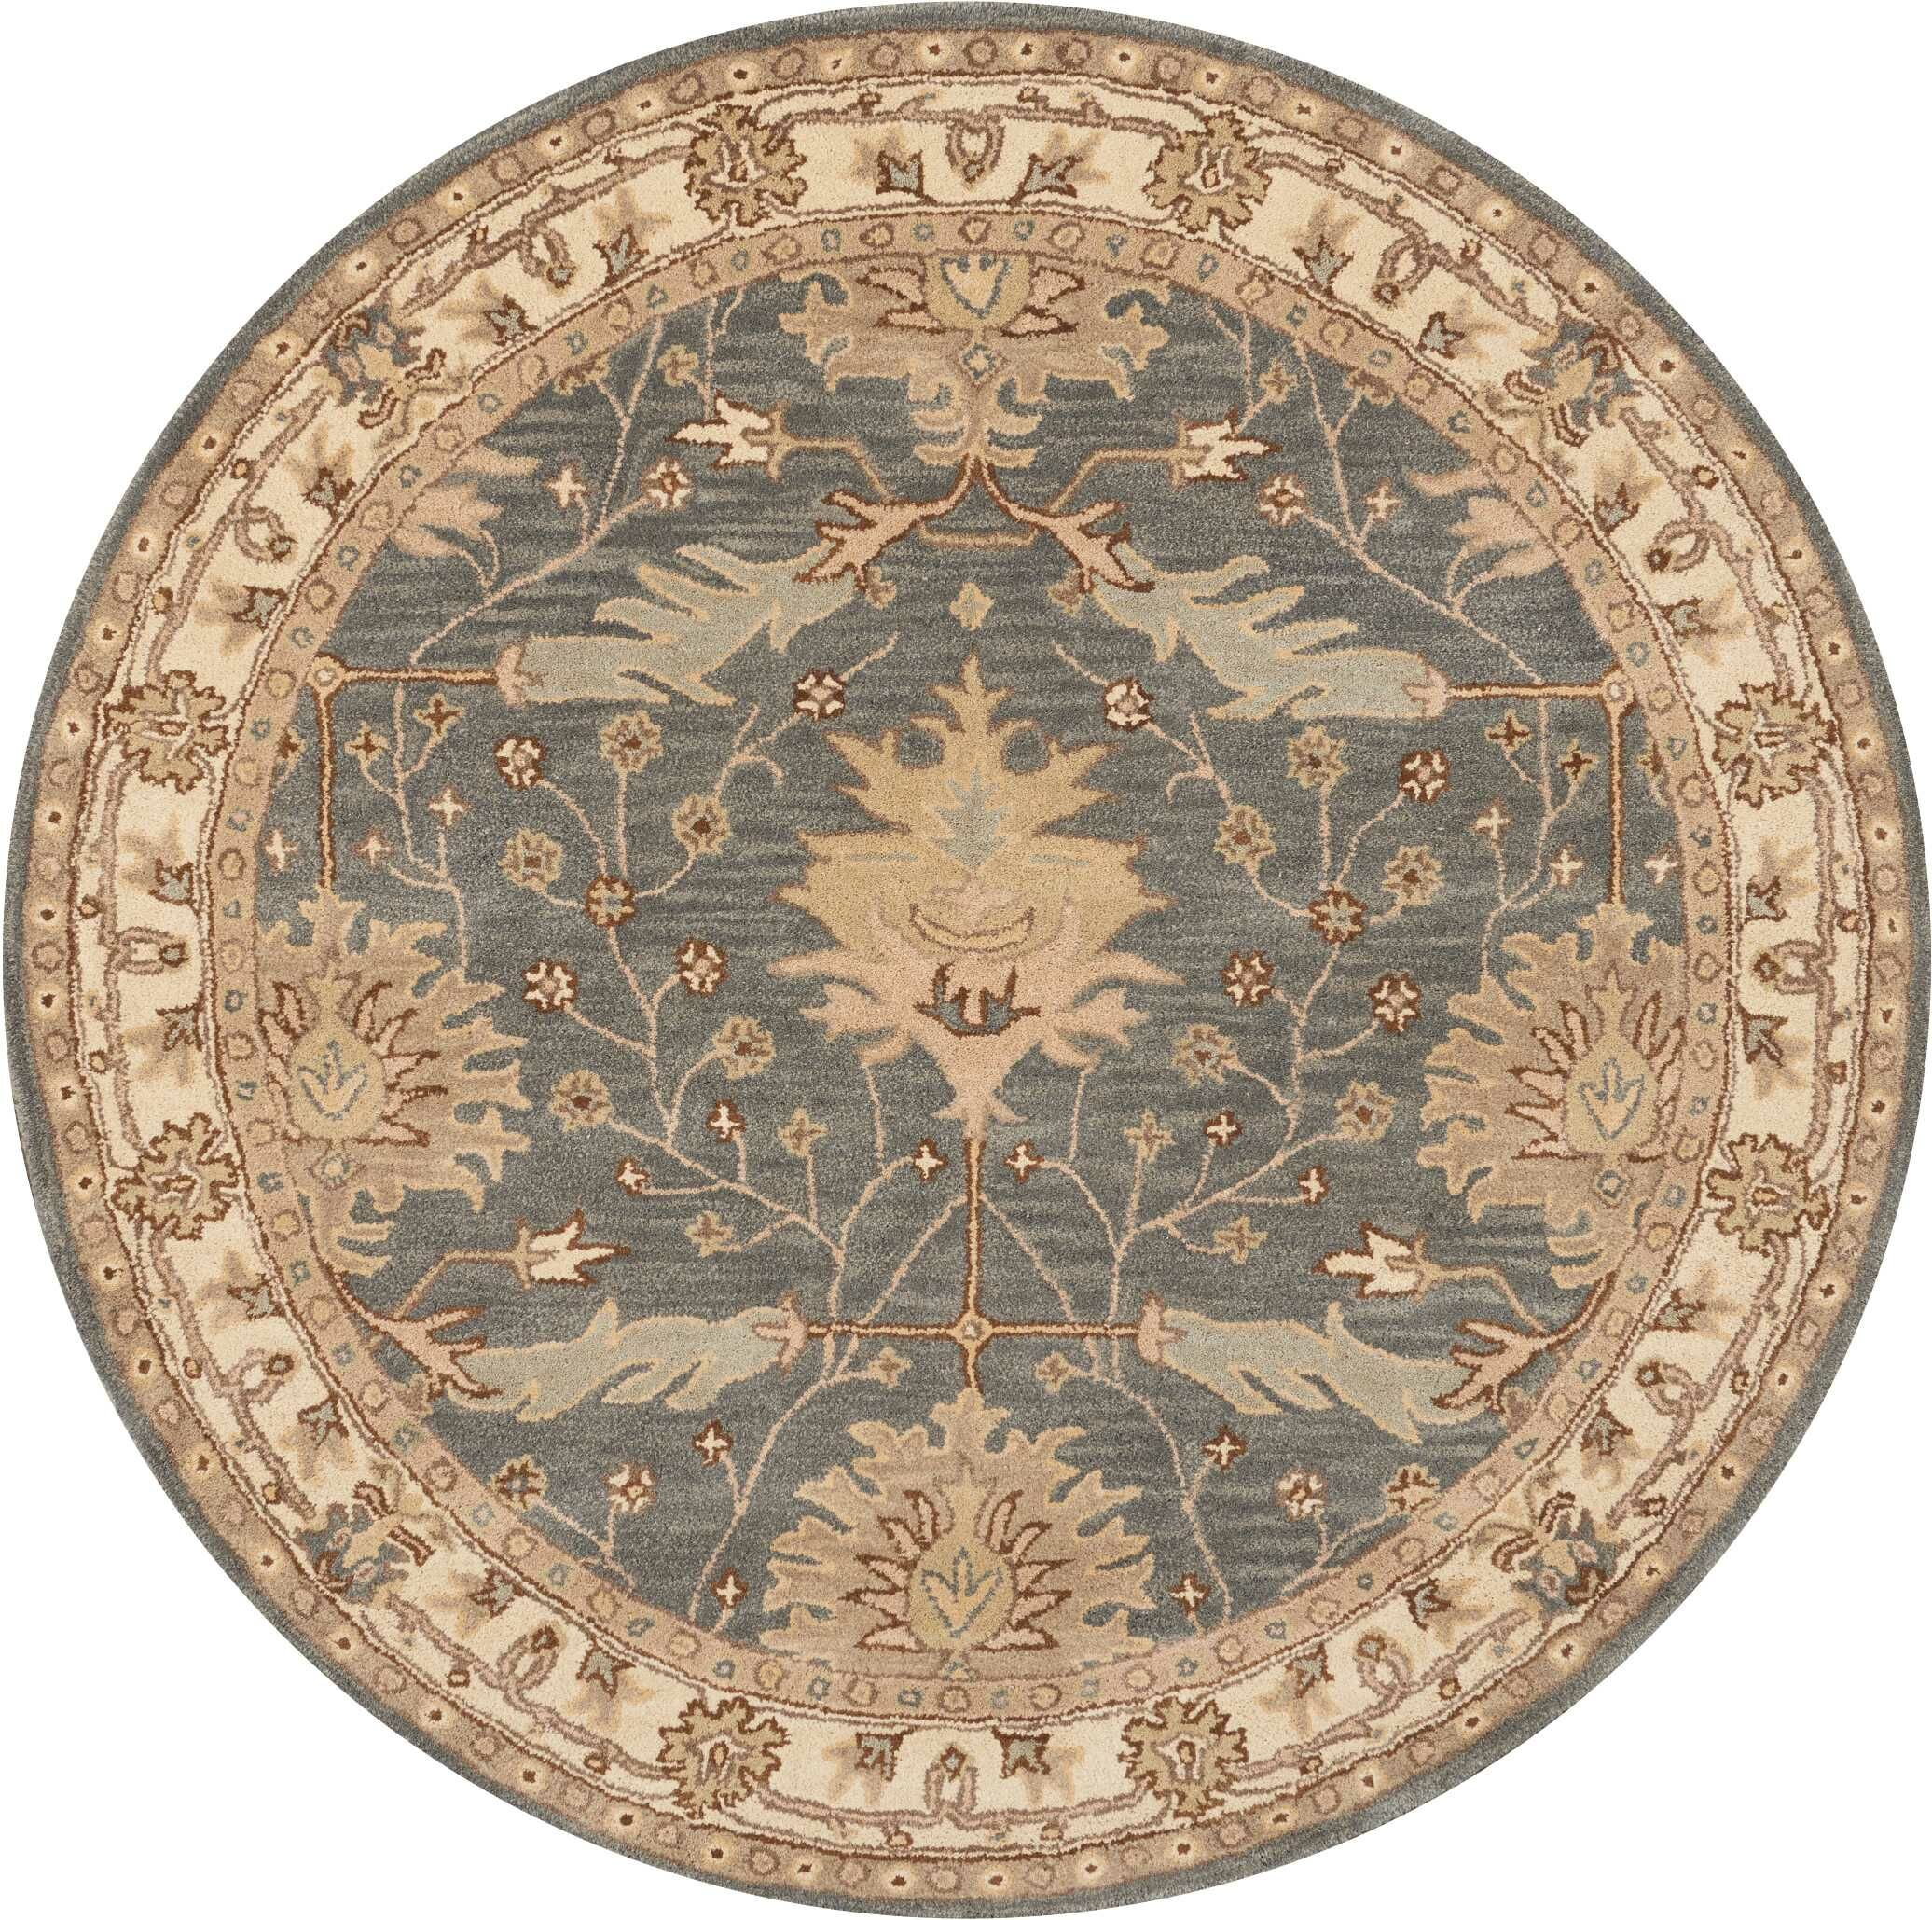 Constance Hand-Tufted Wool Blue Area Rug Rug Size: Round 6'